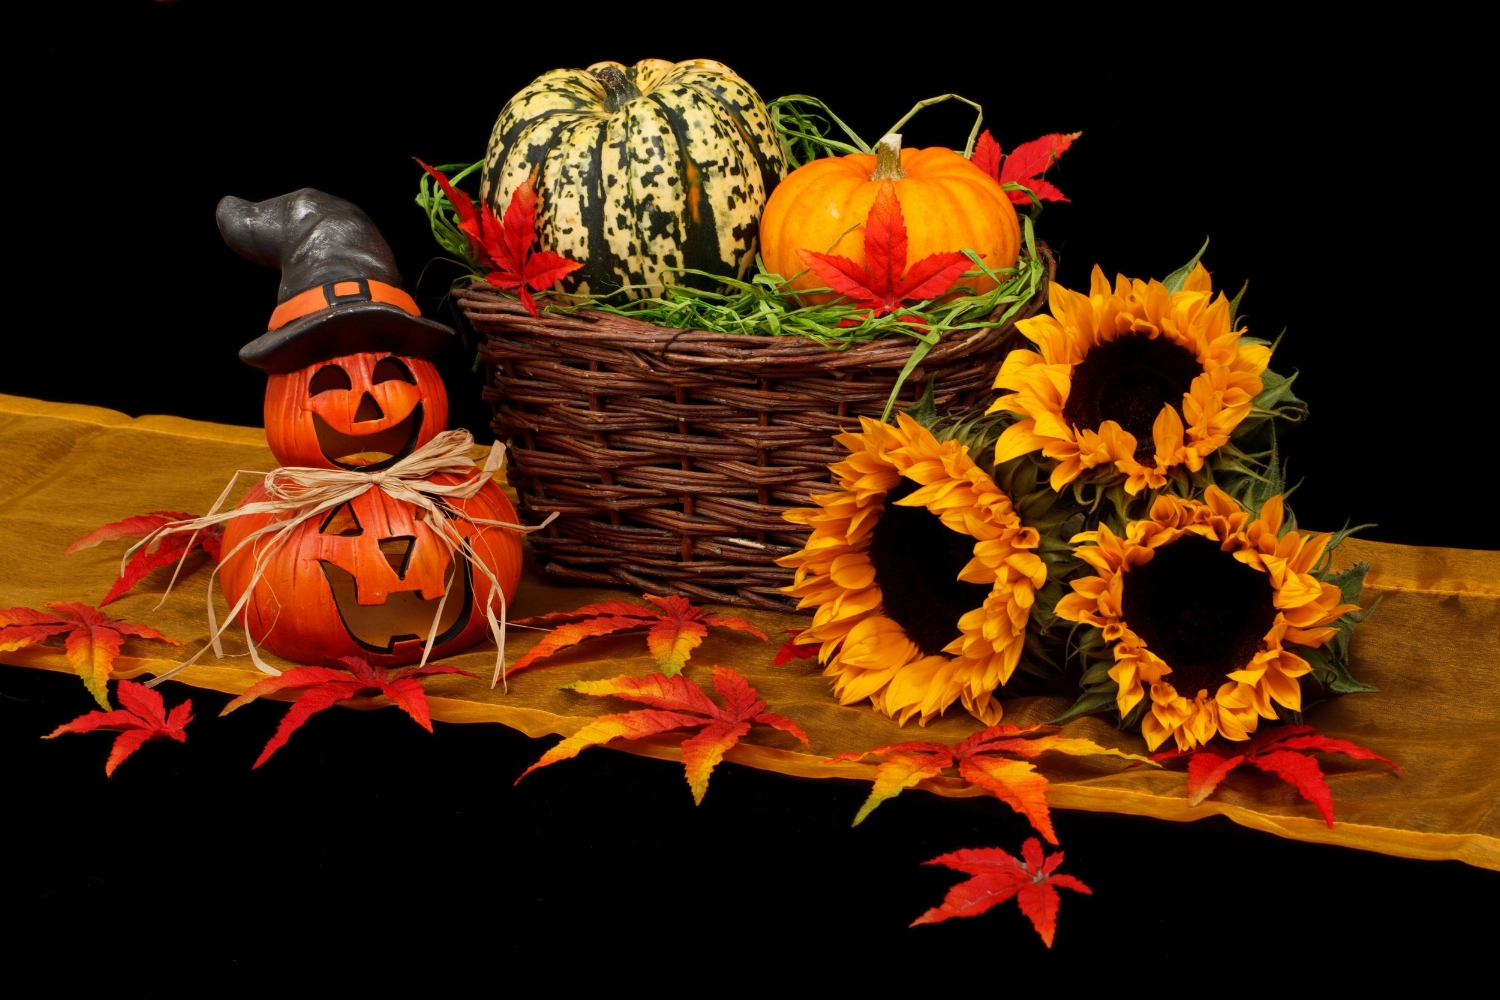 Halloween pumpkins are among the autumnal cornucopia - although they may be in disguise!